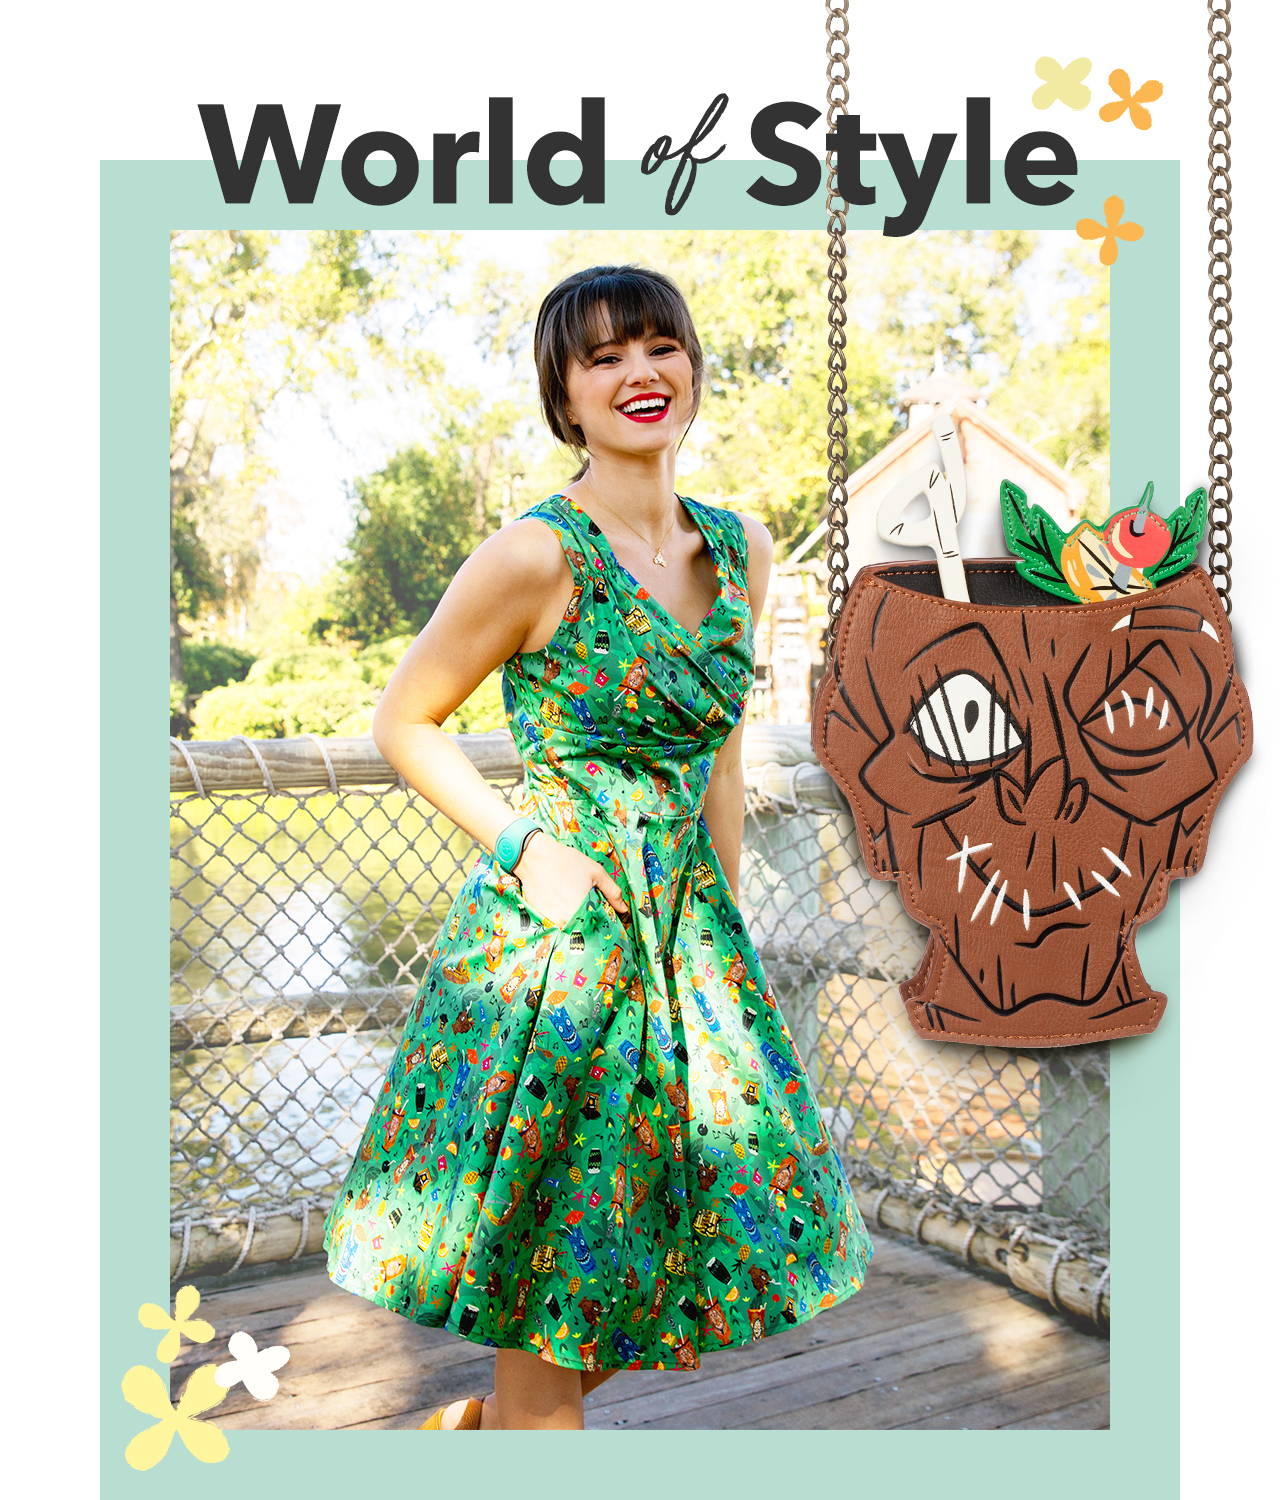 World of Style | Shop Now